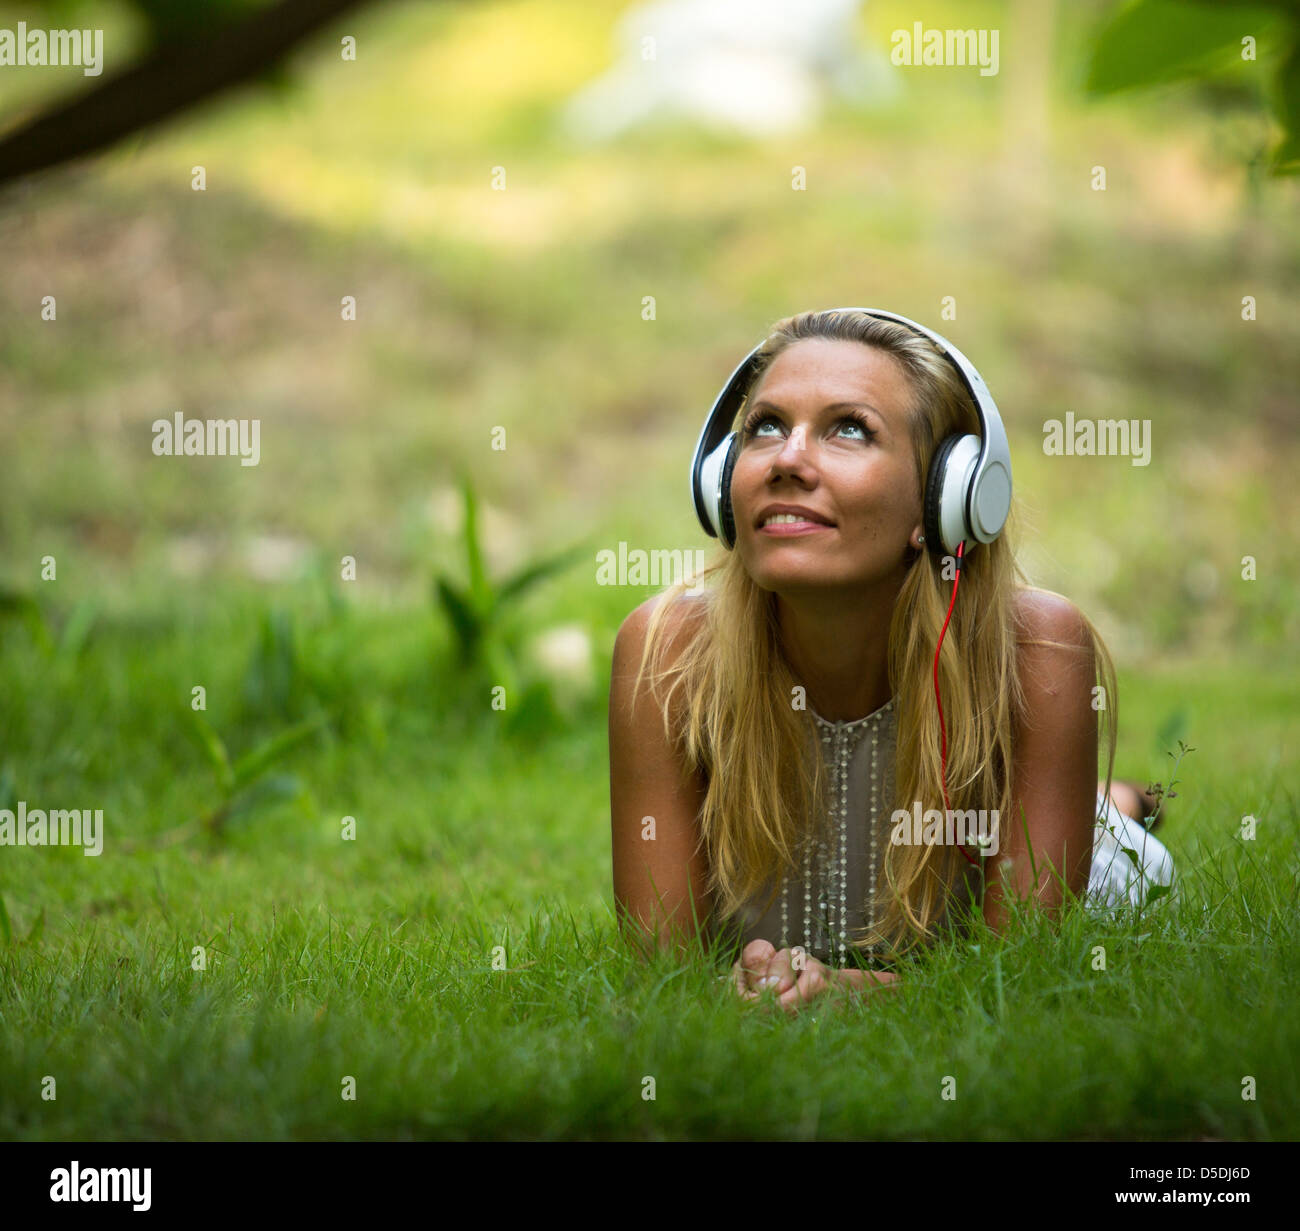 Happiness girl with headphones enjoying nature and music at sunny day - Stock Image